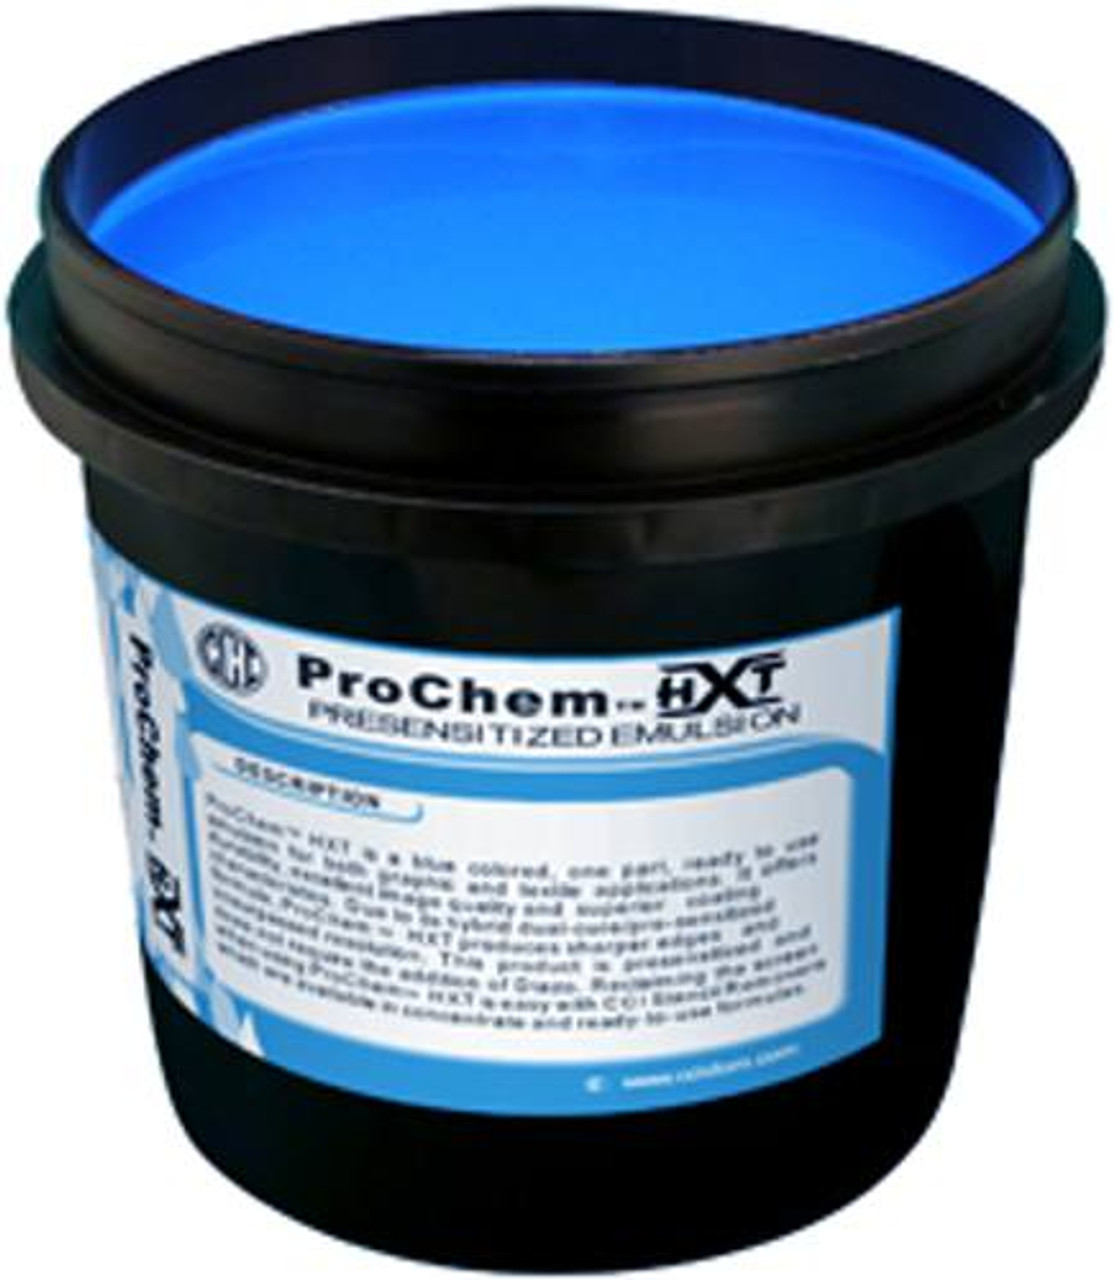 CCI ProChem HXT Blue Photopolymer Pre Sensitized Emulsion